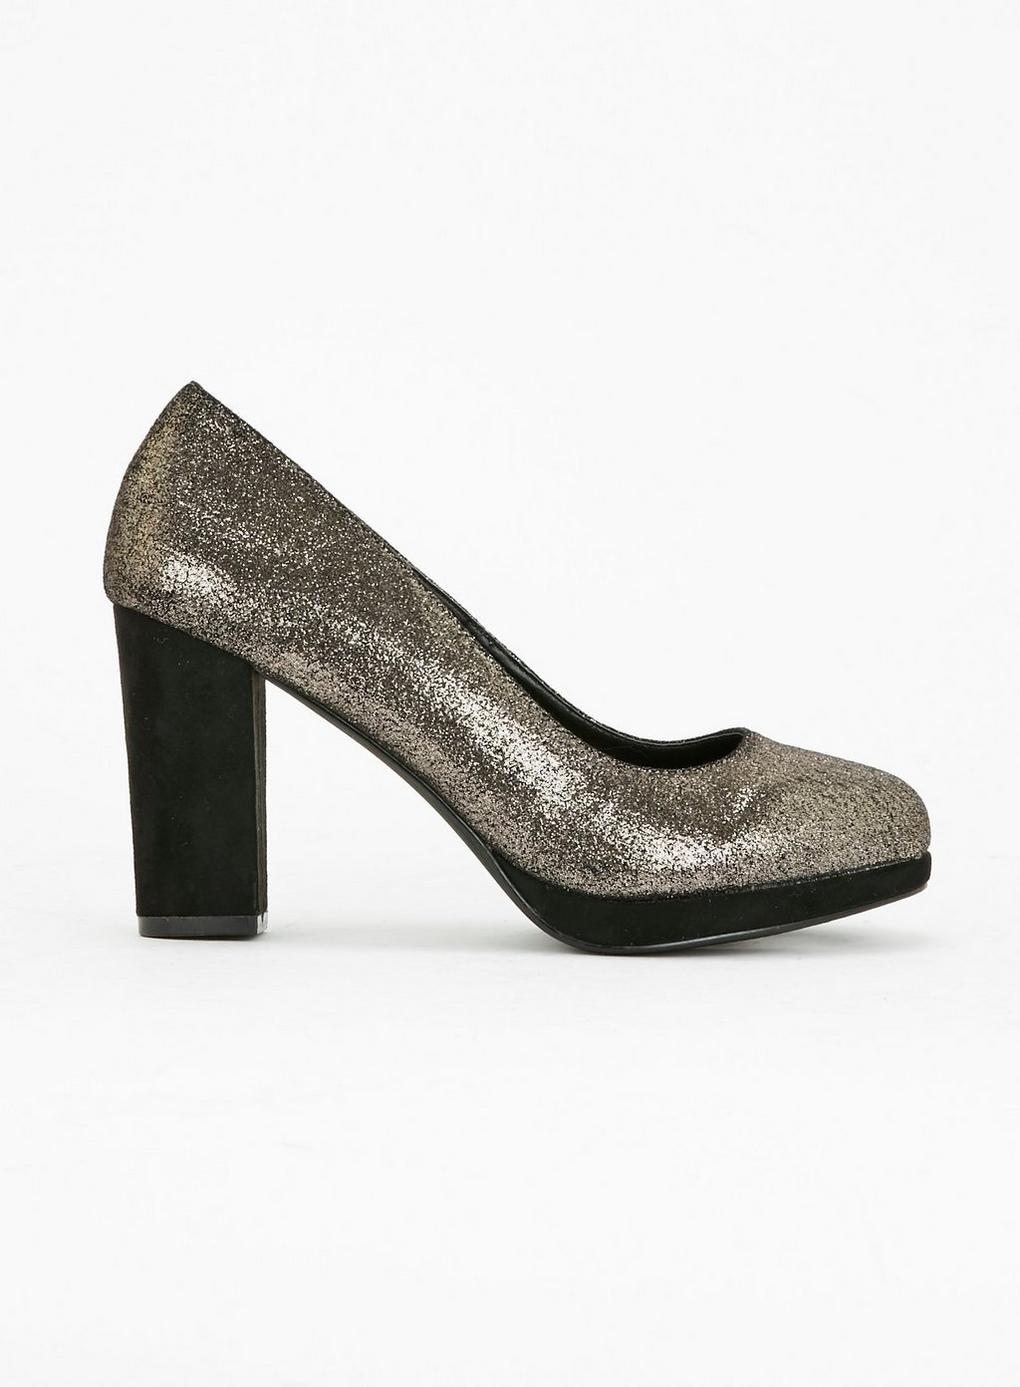 99a2f17acd678 Evans Extra Wide Fit Gold Platform Court Shoes in Metallic - Lyst